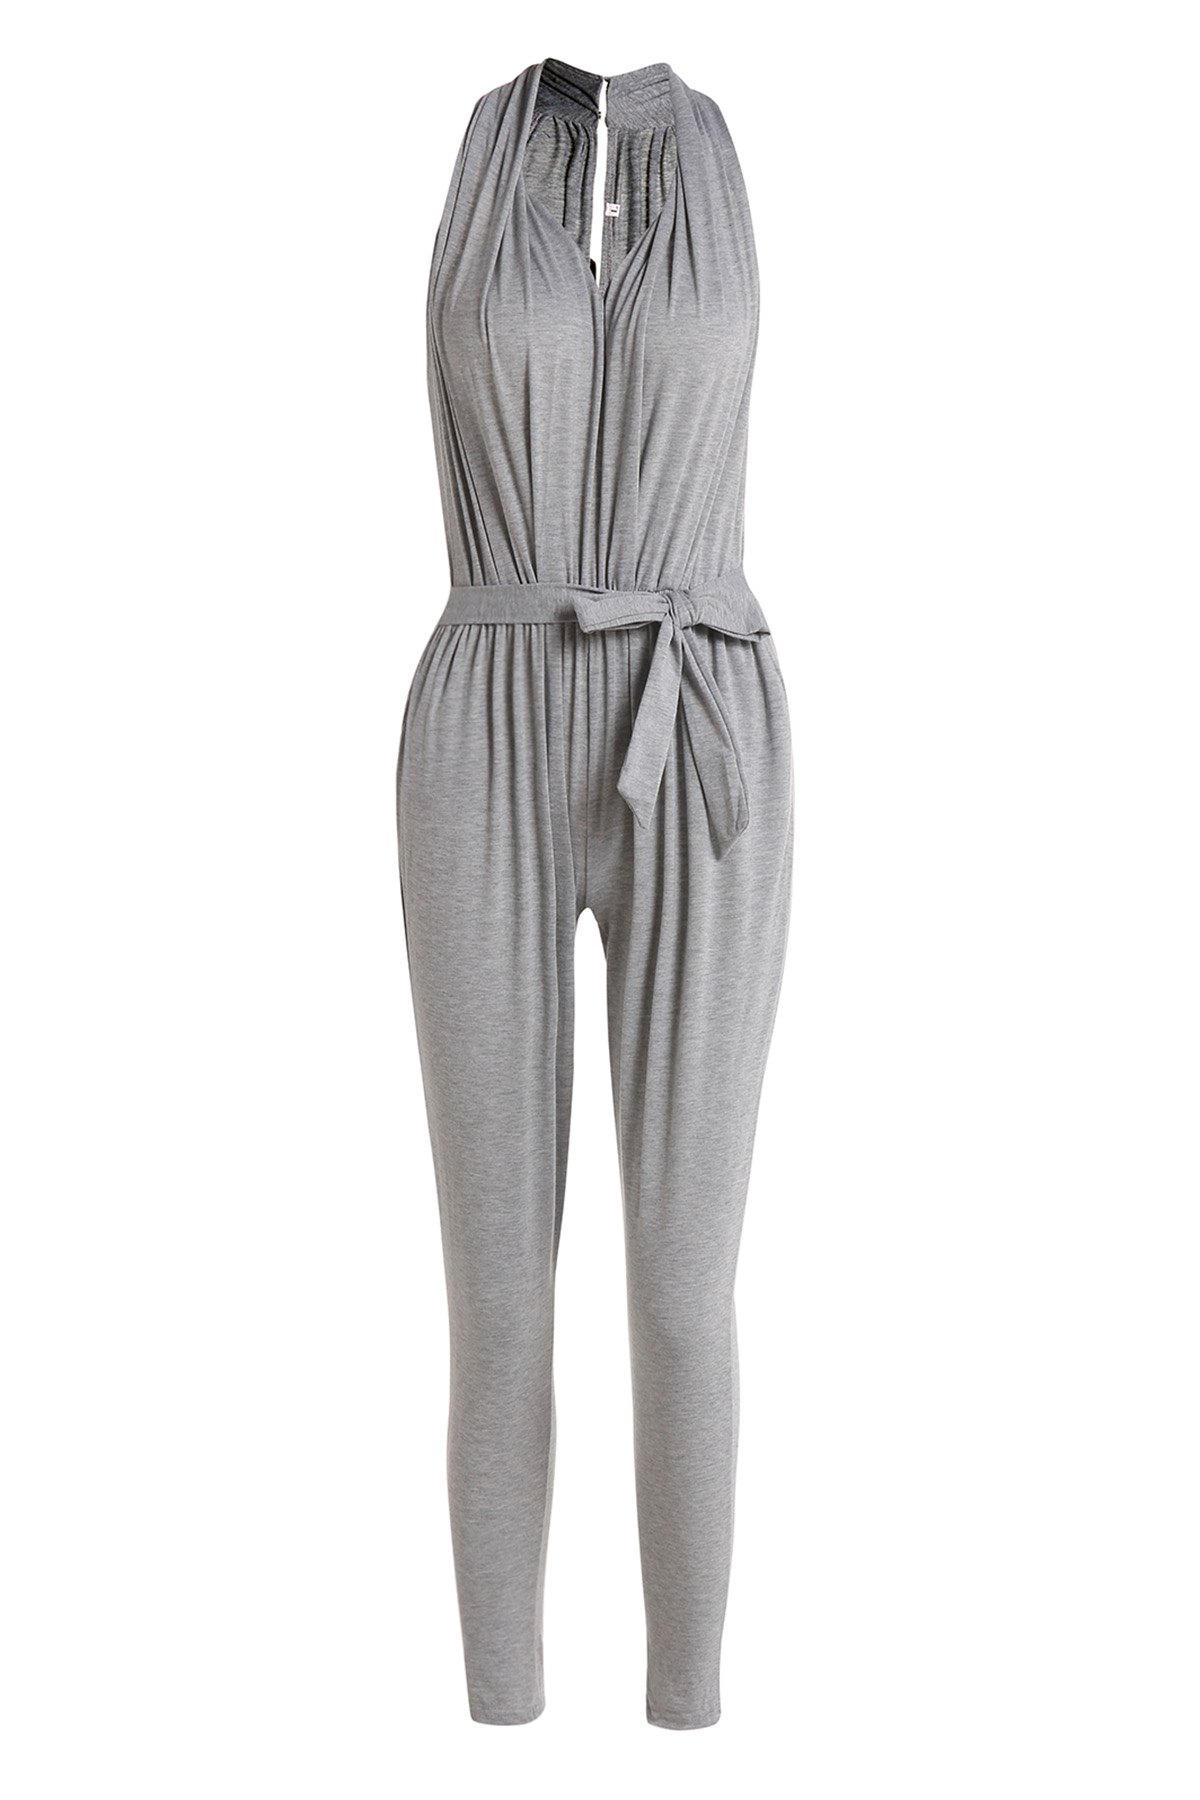 Stylish Plunging Neck Sleeveless Pocket Design Solid Color Women's Harem Jumpsuit - GRAY S